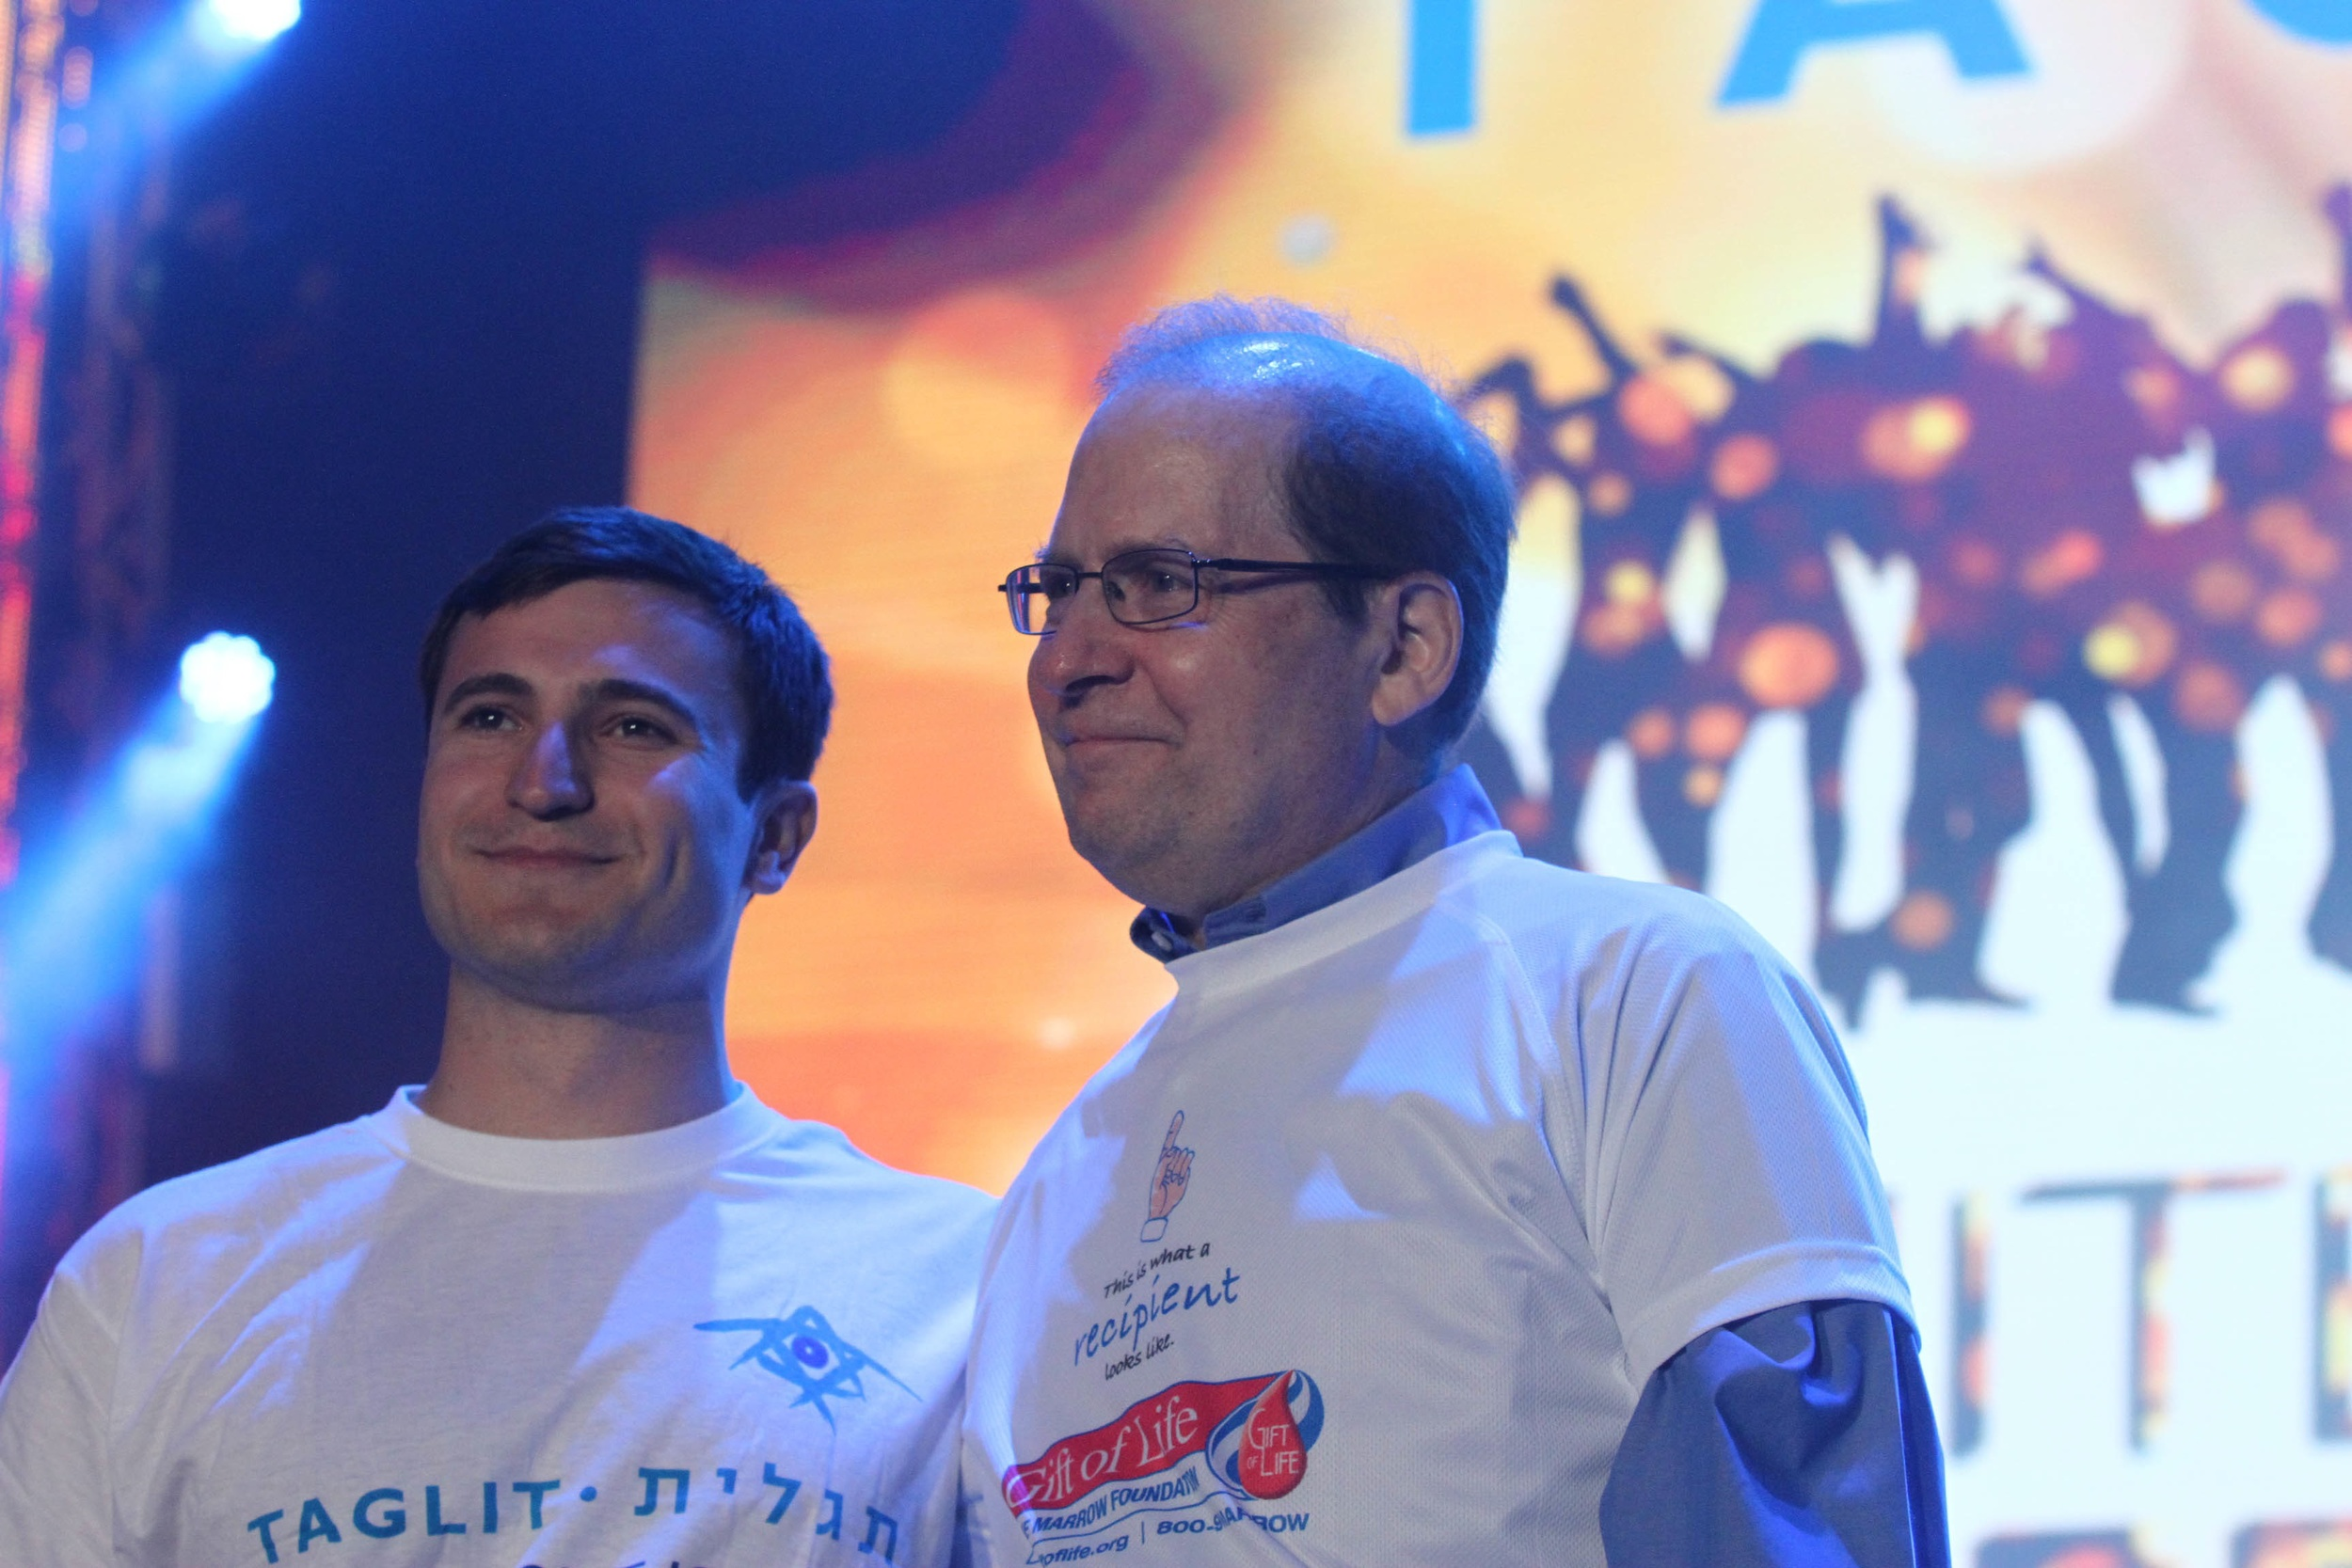 Click photo to download. Birthright alum Matthew Putterman (left) with Michael, to whom he made a bone marrow donation. Credit: Taglit-Birthright Israel.